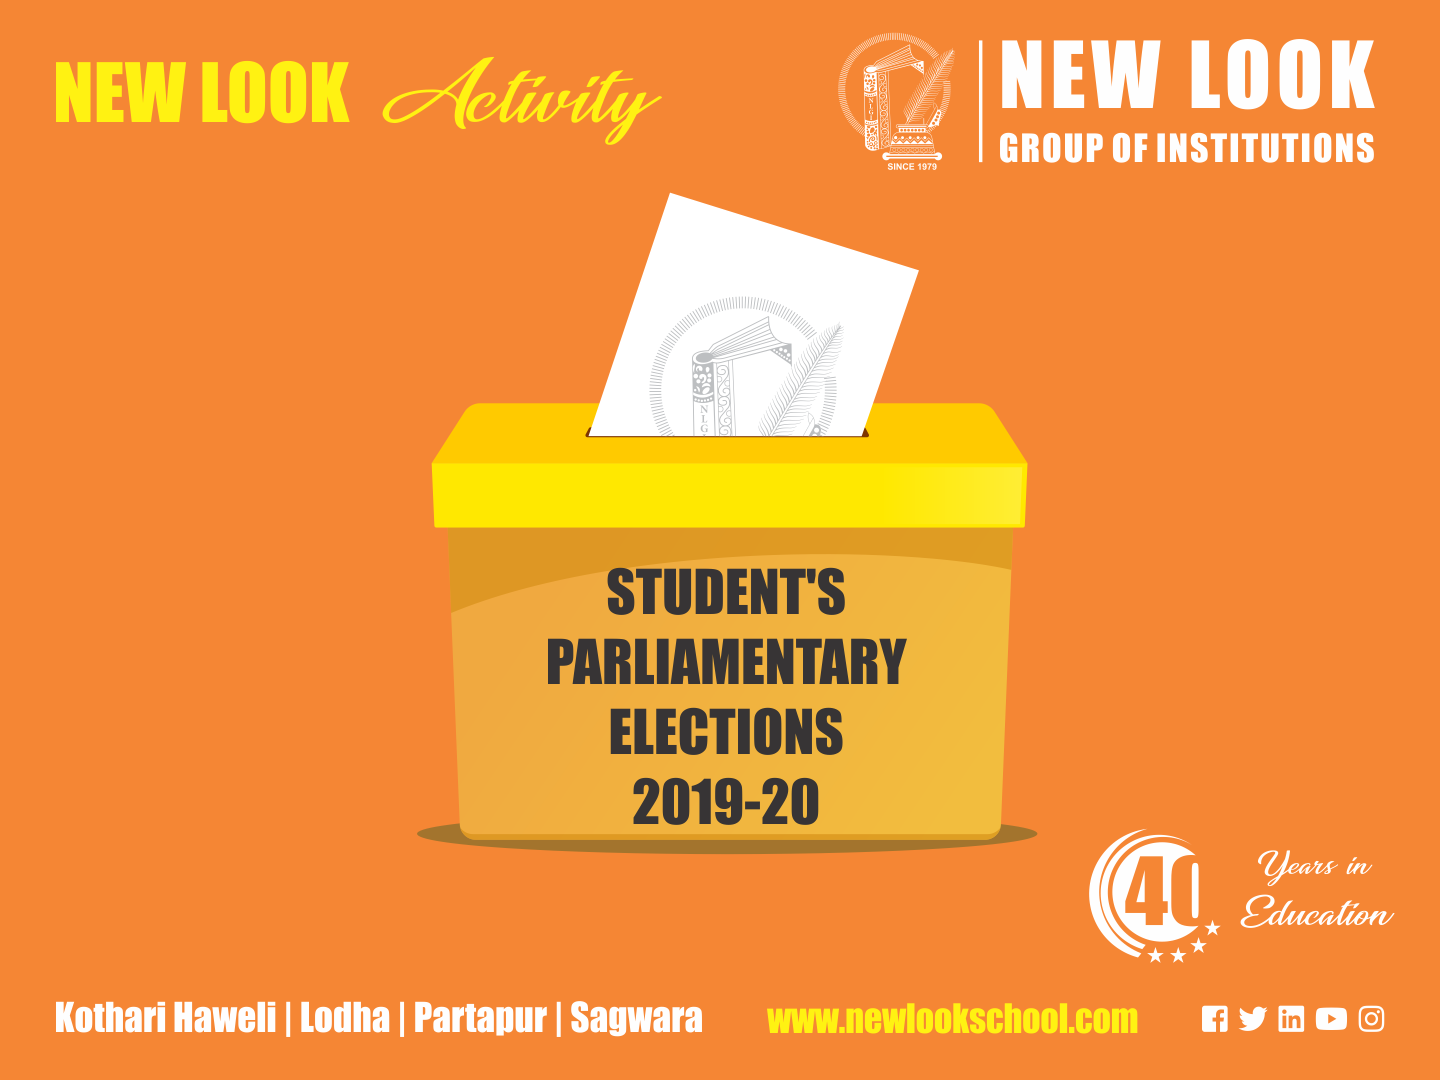 STUDENT'S PARLIAMENTARY ELECTIONS 2019-20